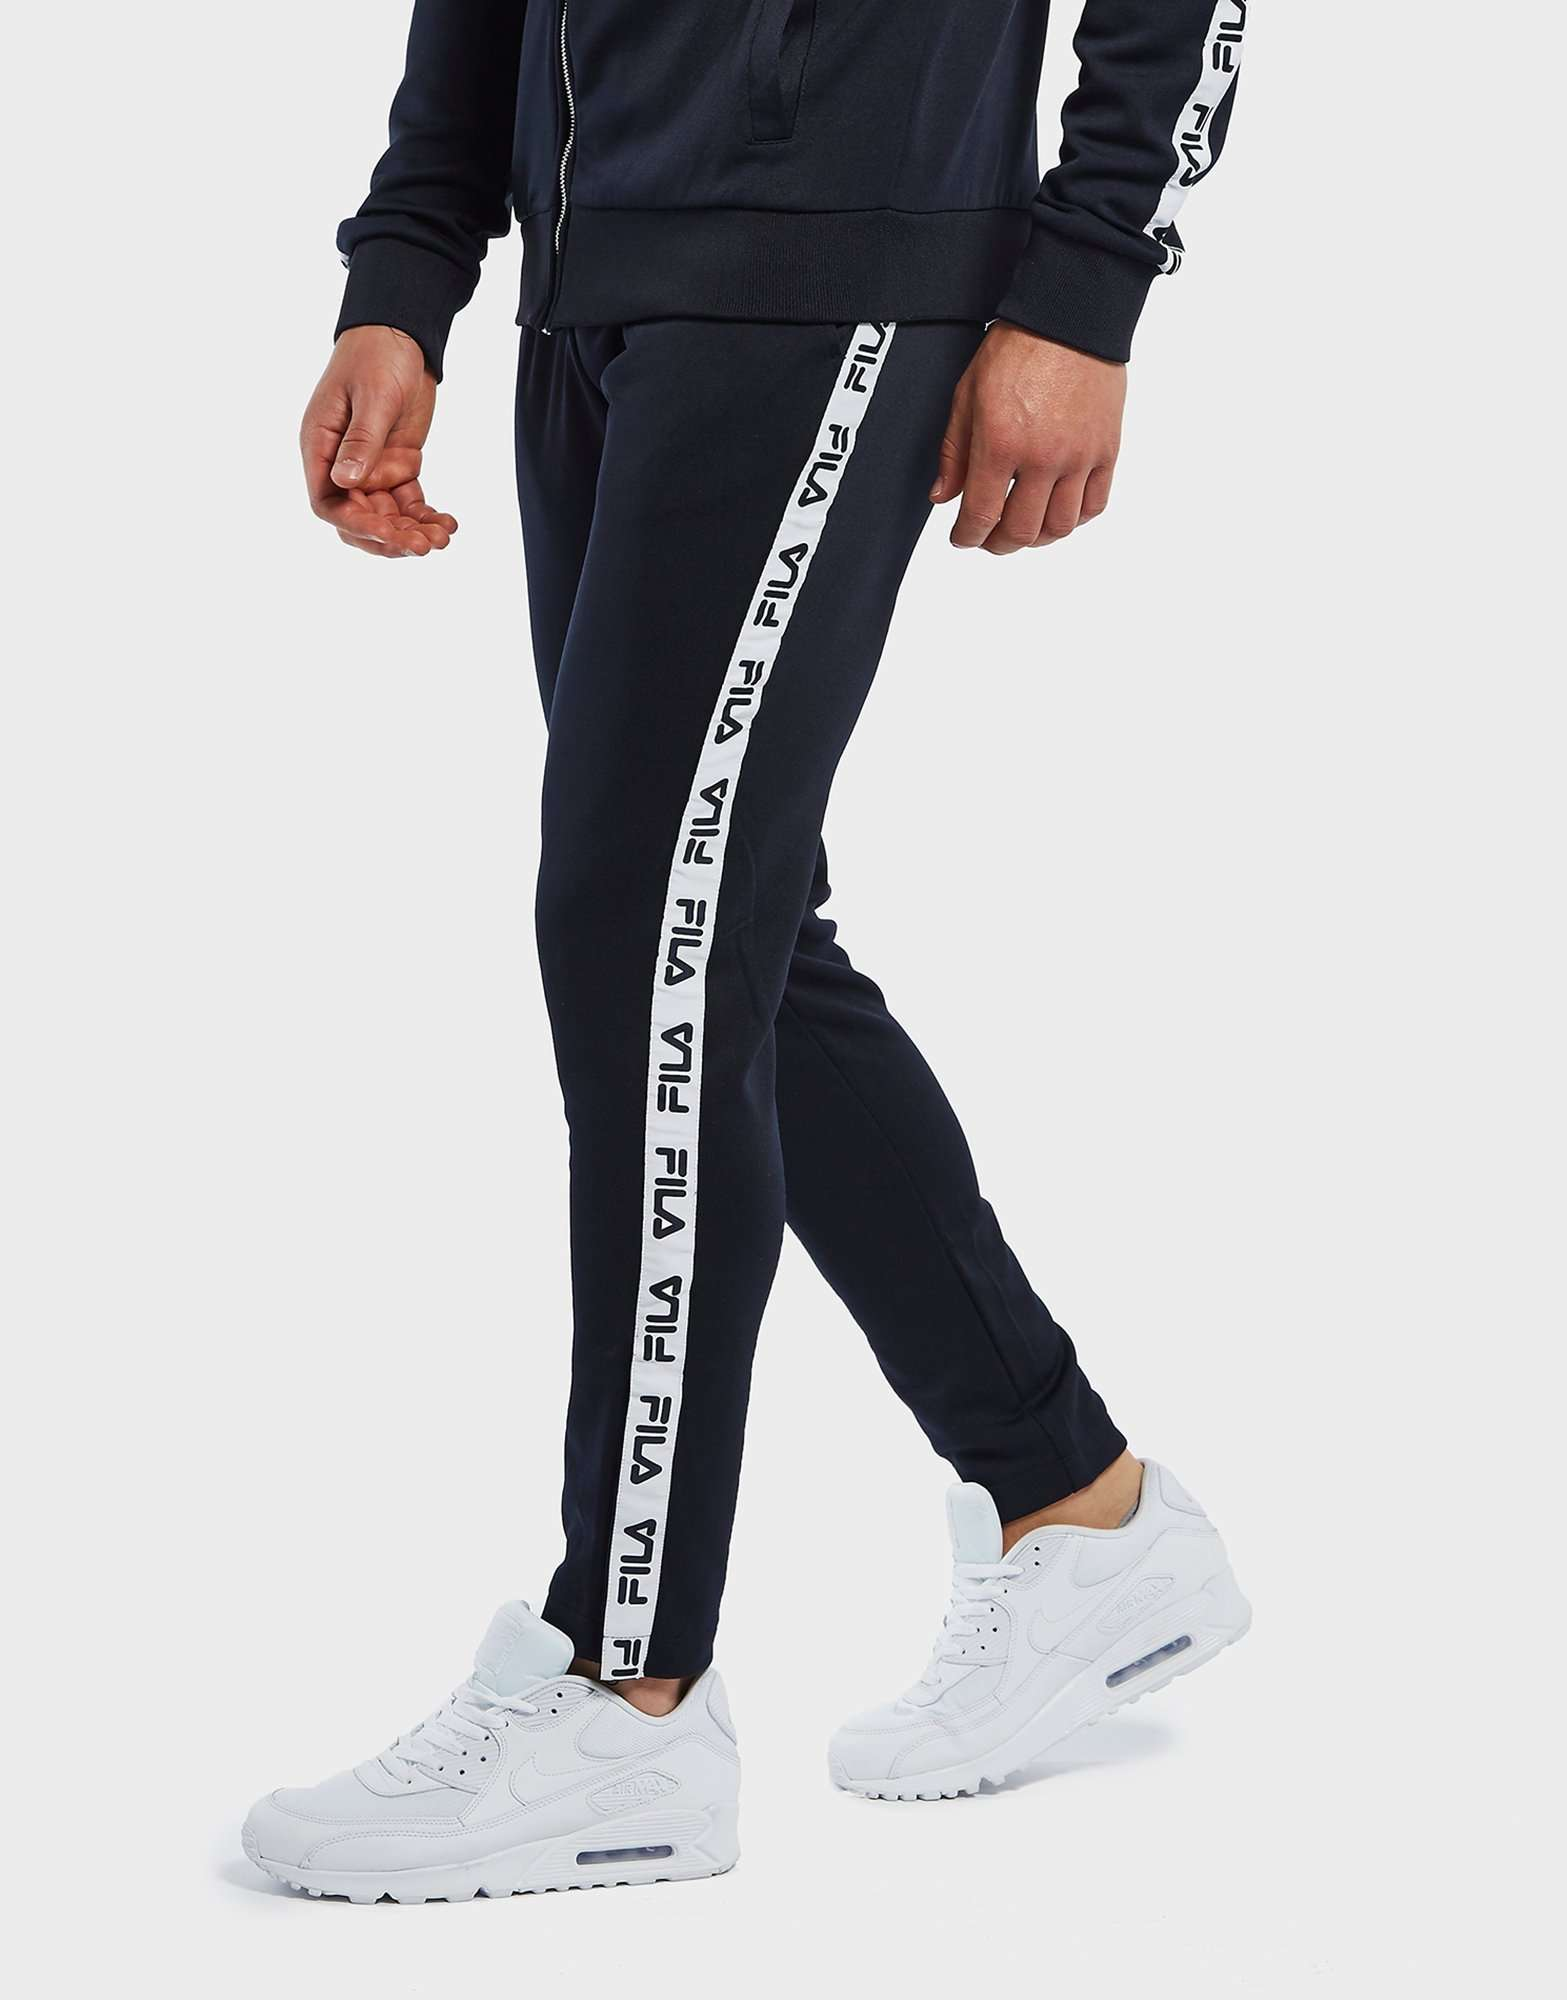 Fila Comino Track Pants - Exclusive